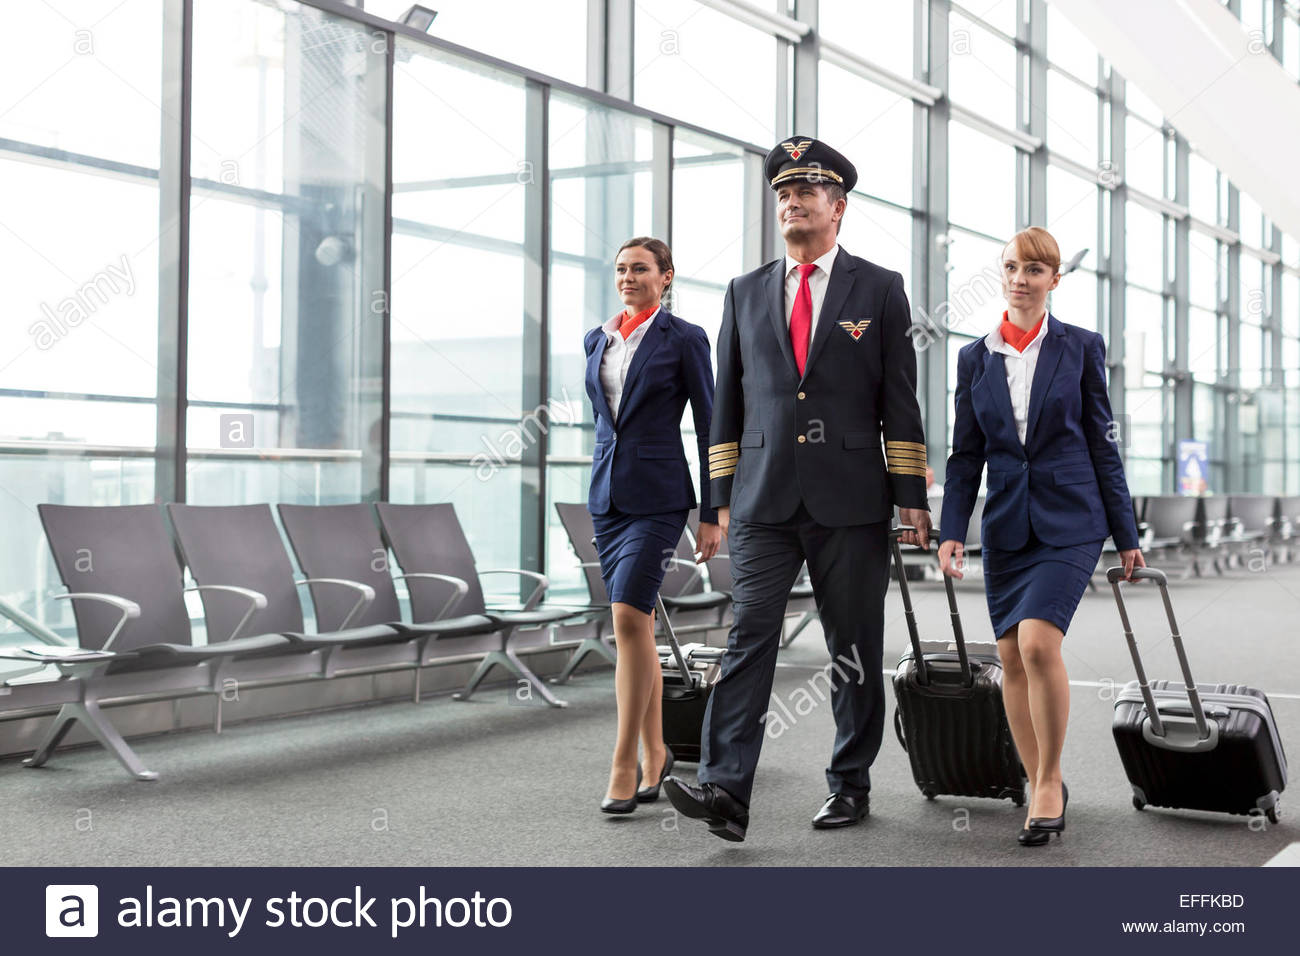 how to become a flight attendant in canada